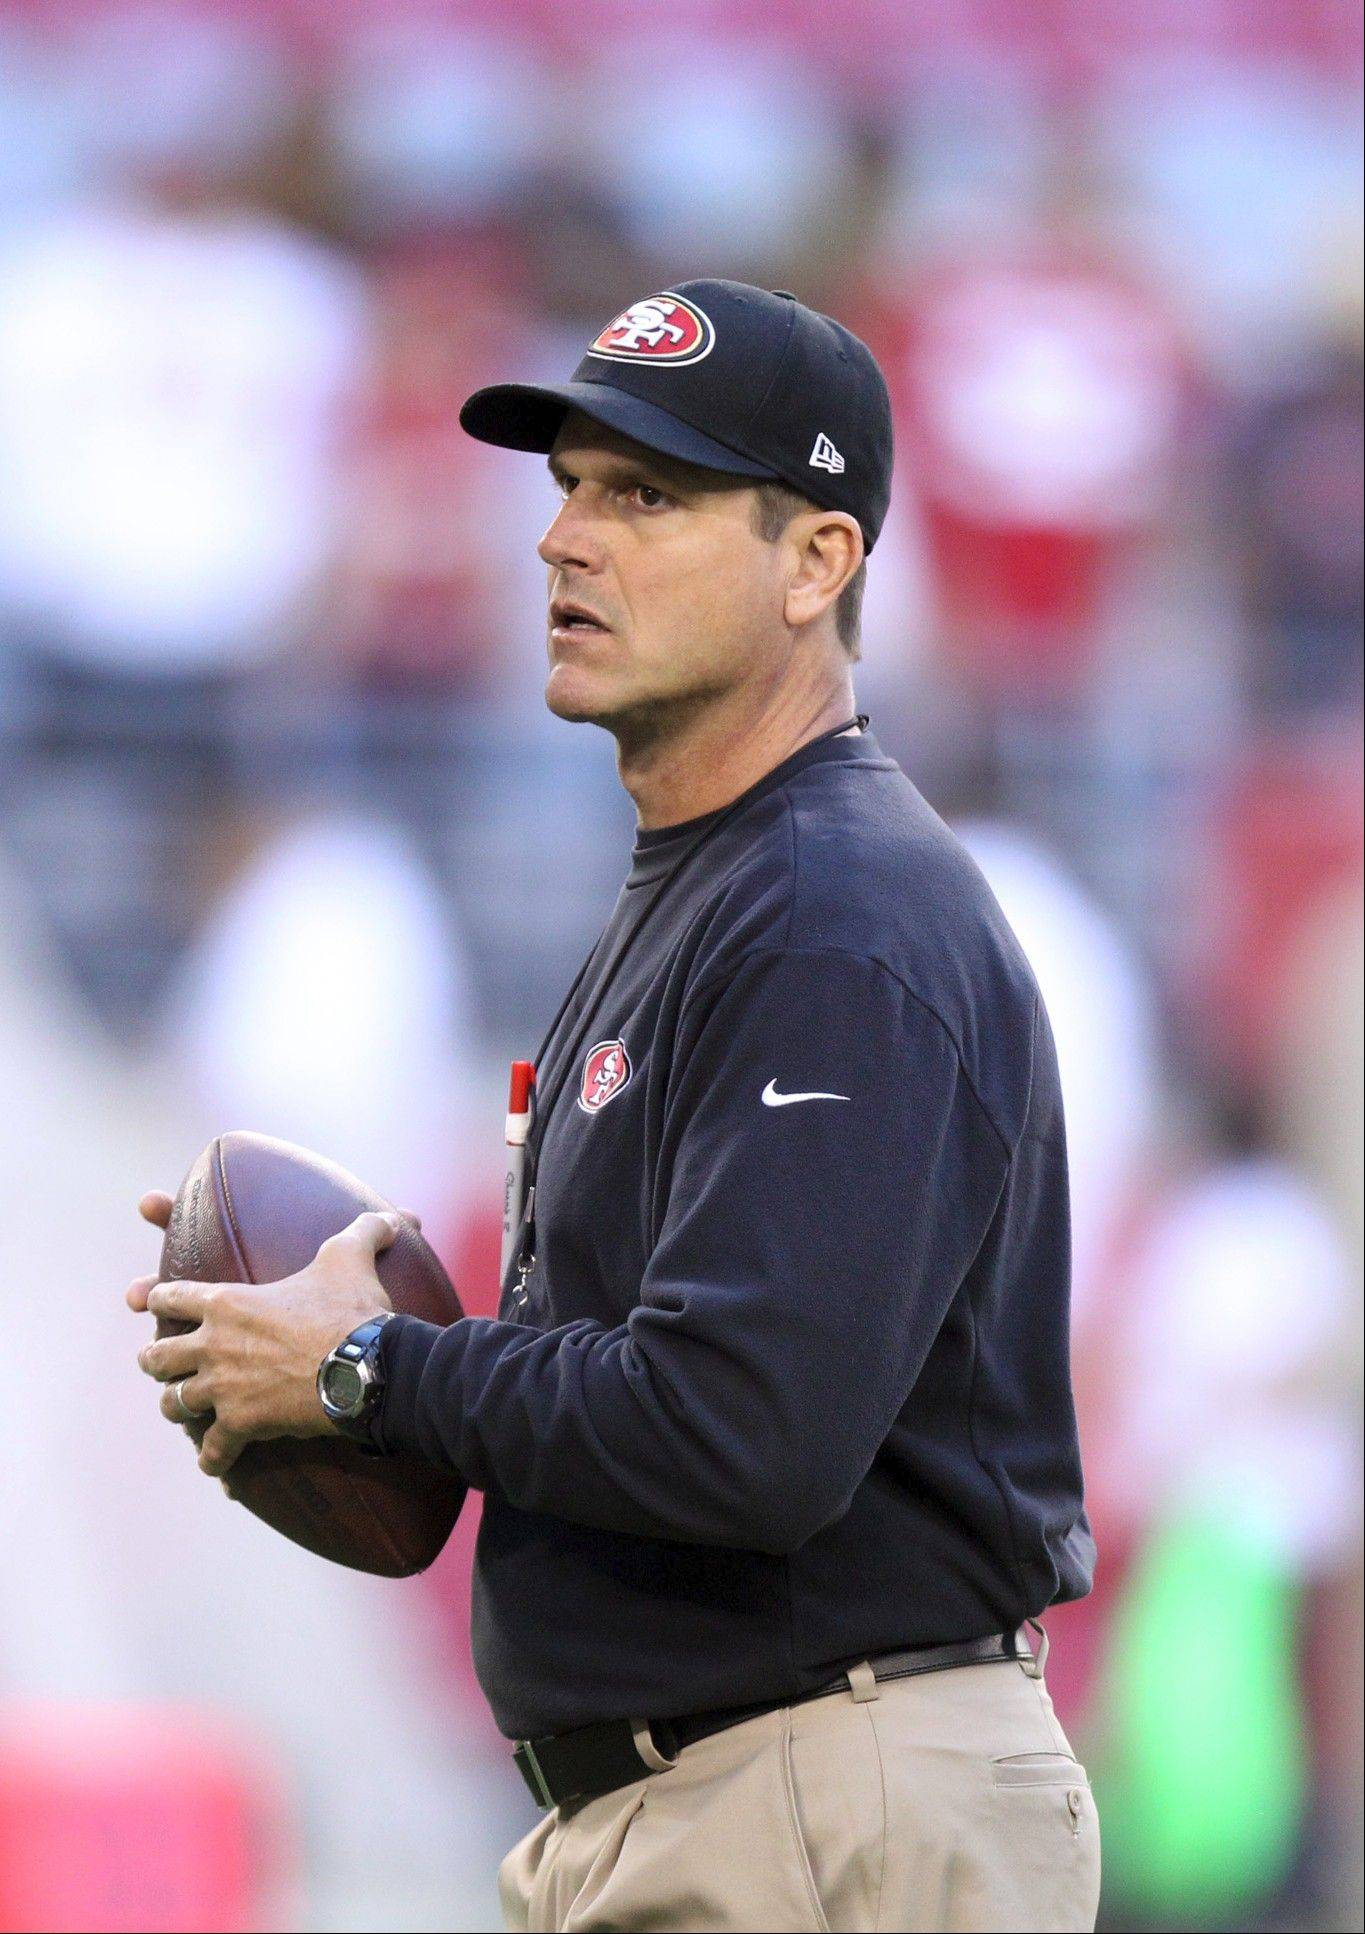 San Francisco 49ers coach Jim Harbaugh is seen throwing the ball prior to facing the Arizona Cardinals in an NFL football game Monday, Oct. 29, 2012, in Glendale, Ariz.